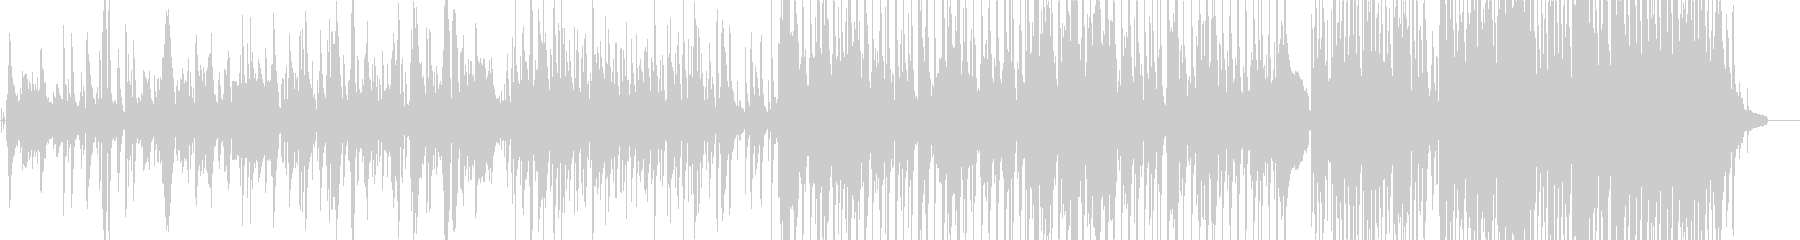 Jazzy female vocalist's unreproduced waveform